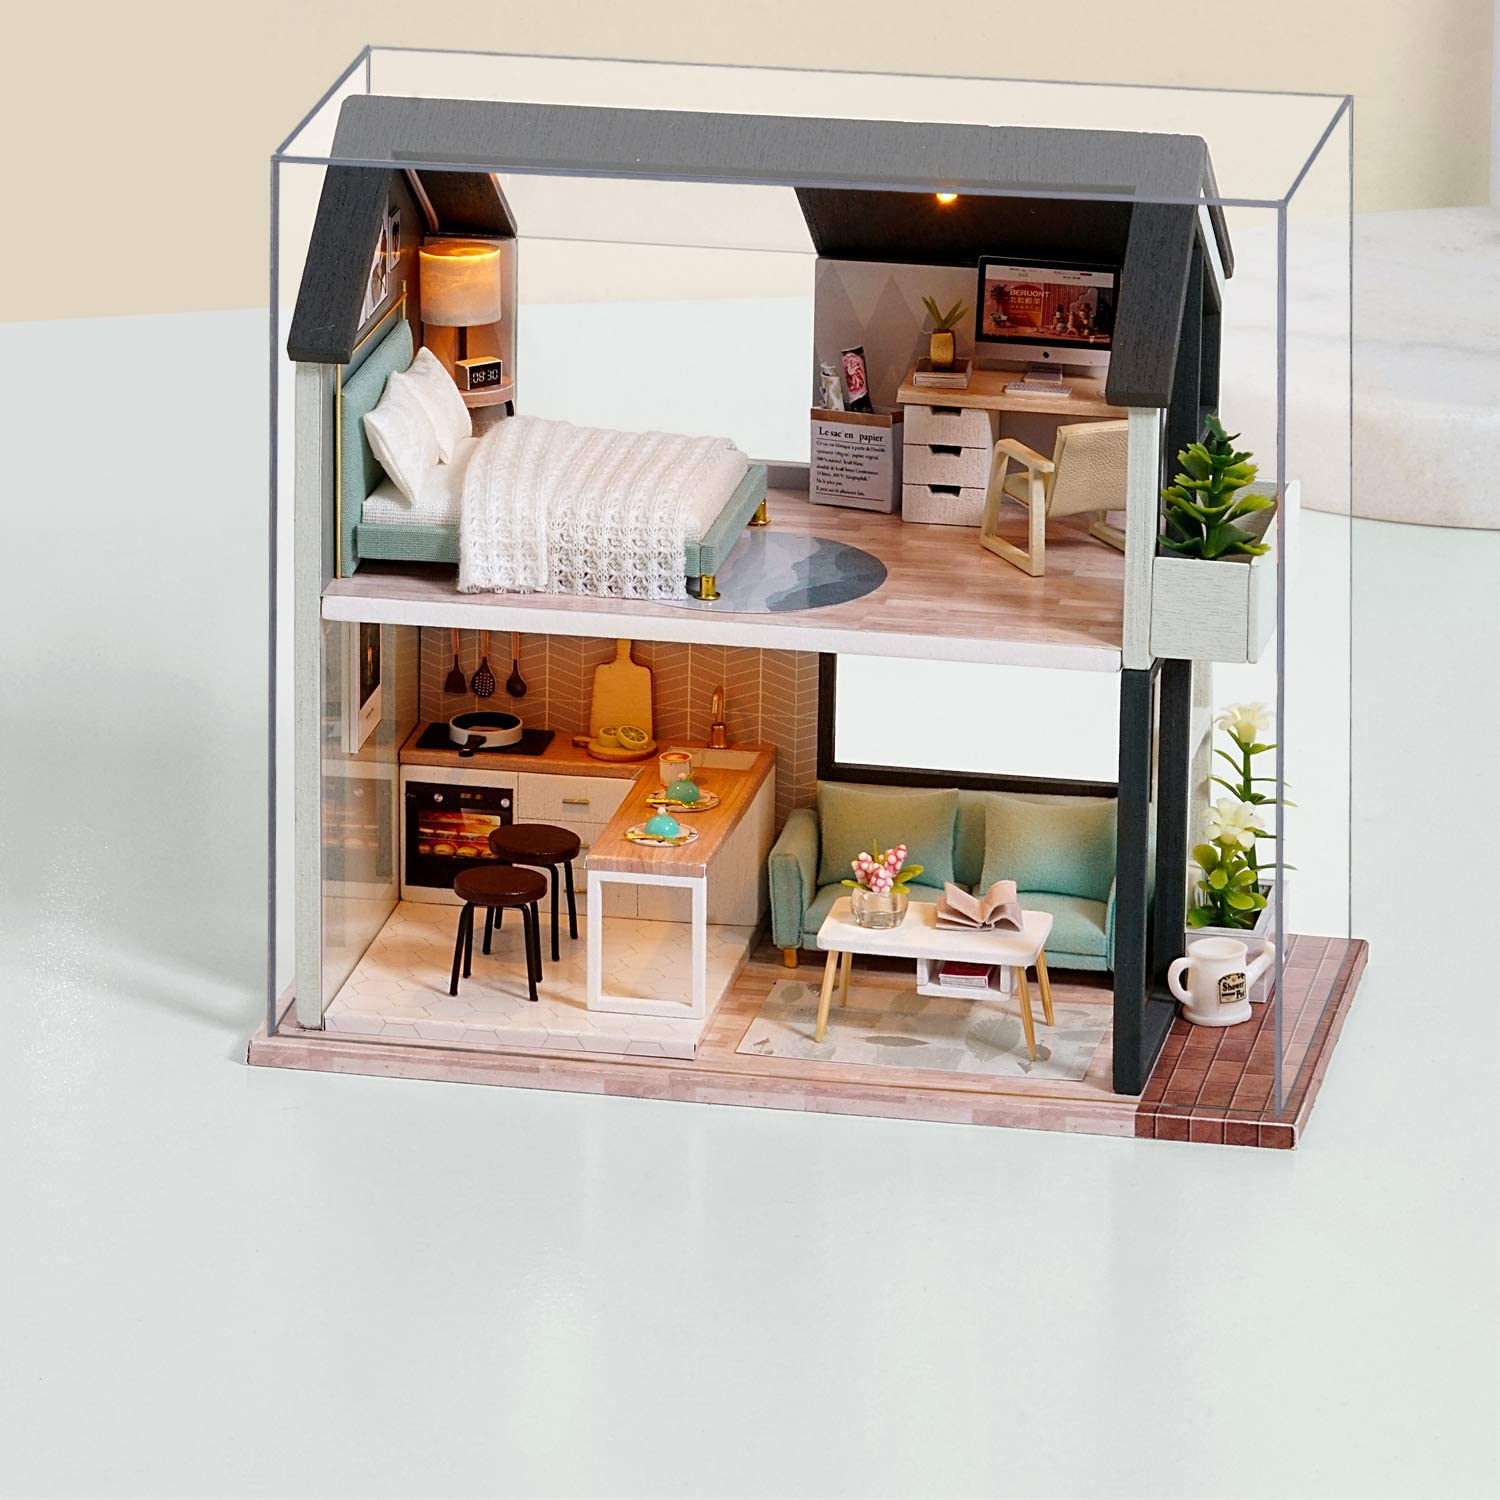 piberagi Doll House Miniature Dollhouse Kit DIY Wooden Dollhouse Accessories with Furniture Set Toy Plus Dust Proof Cover for Kids Teens Adults Miniature Dollhouse QL002